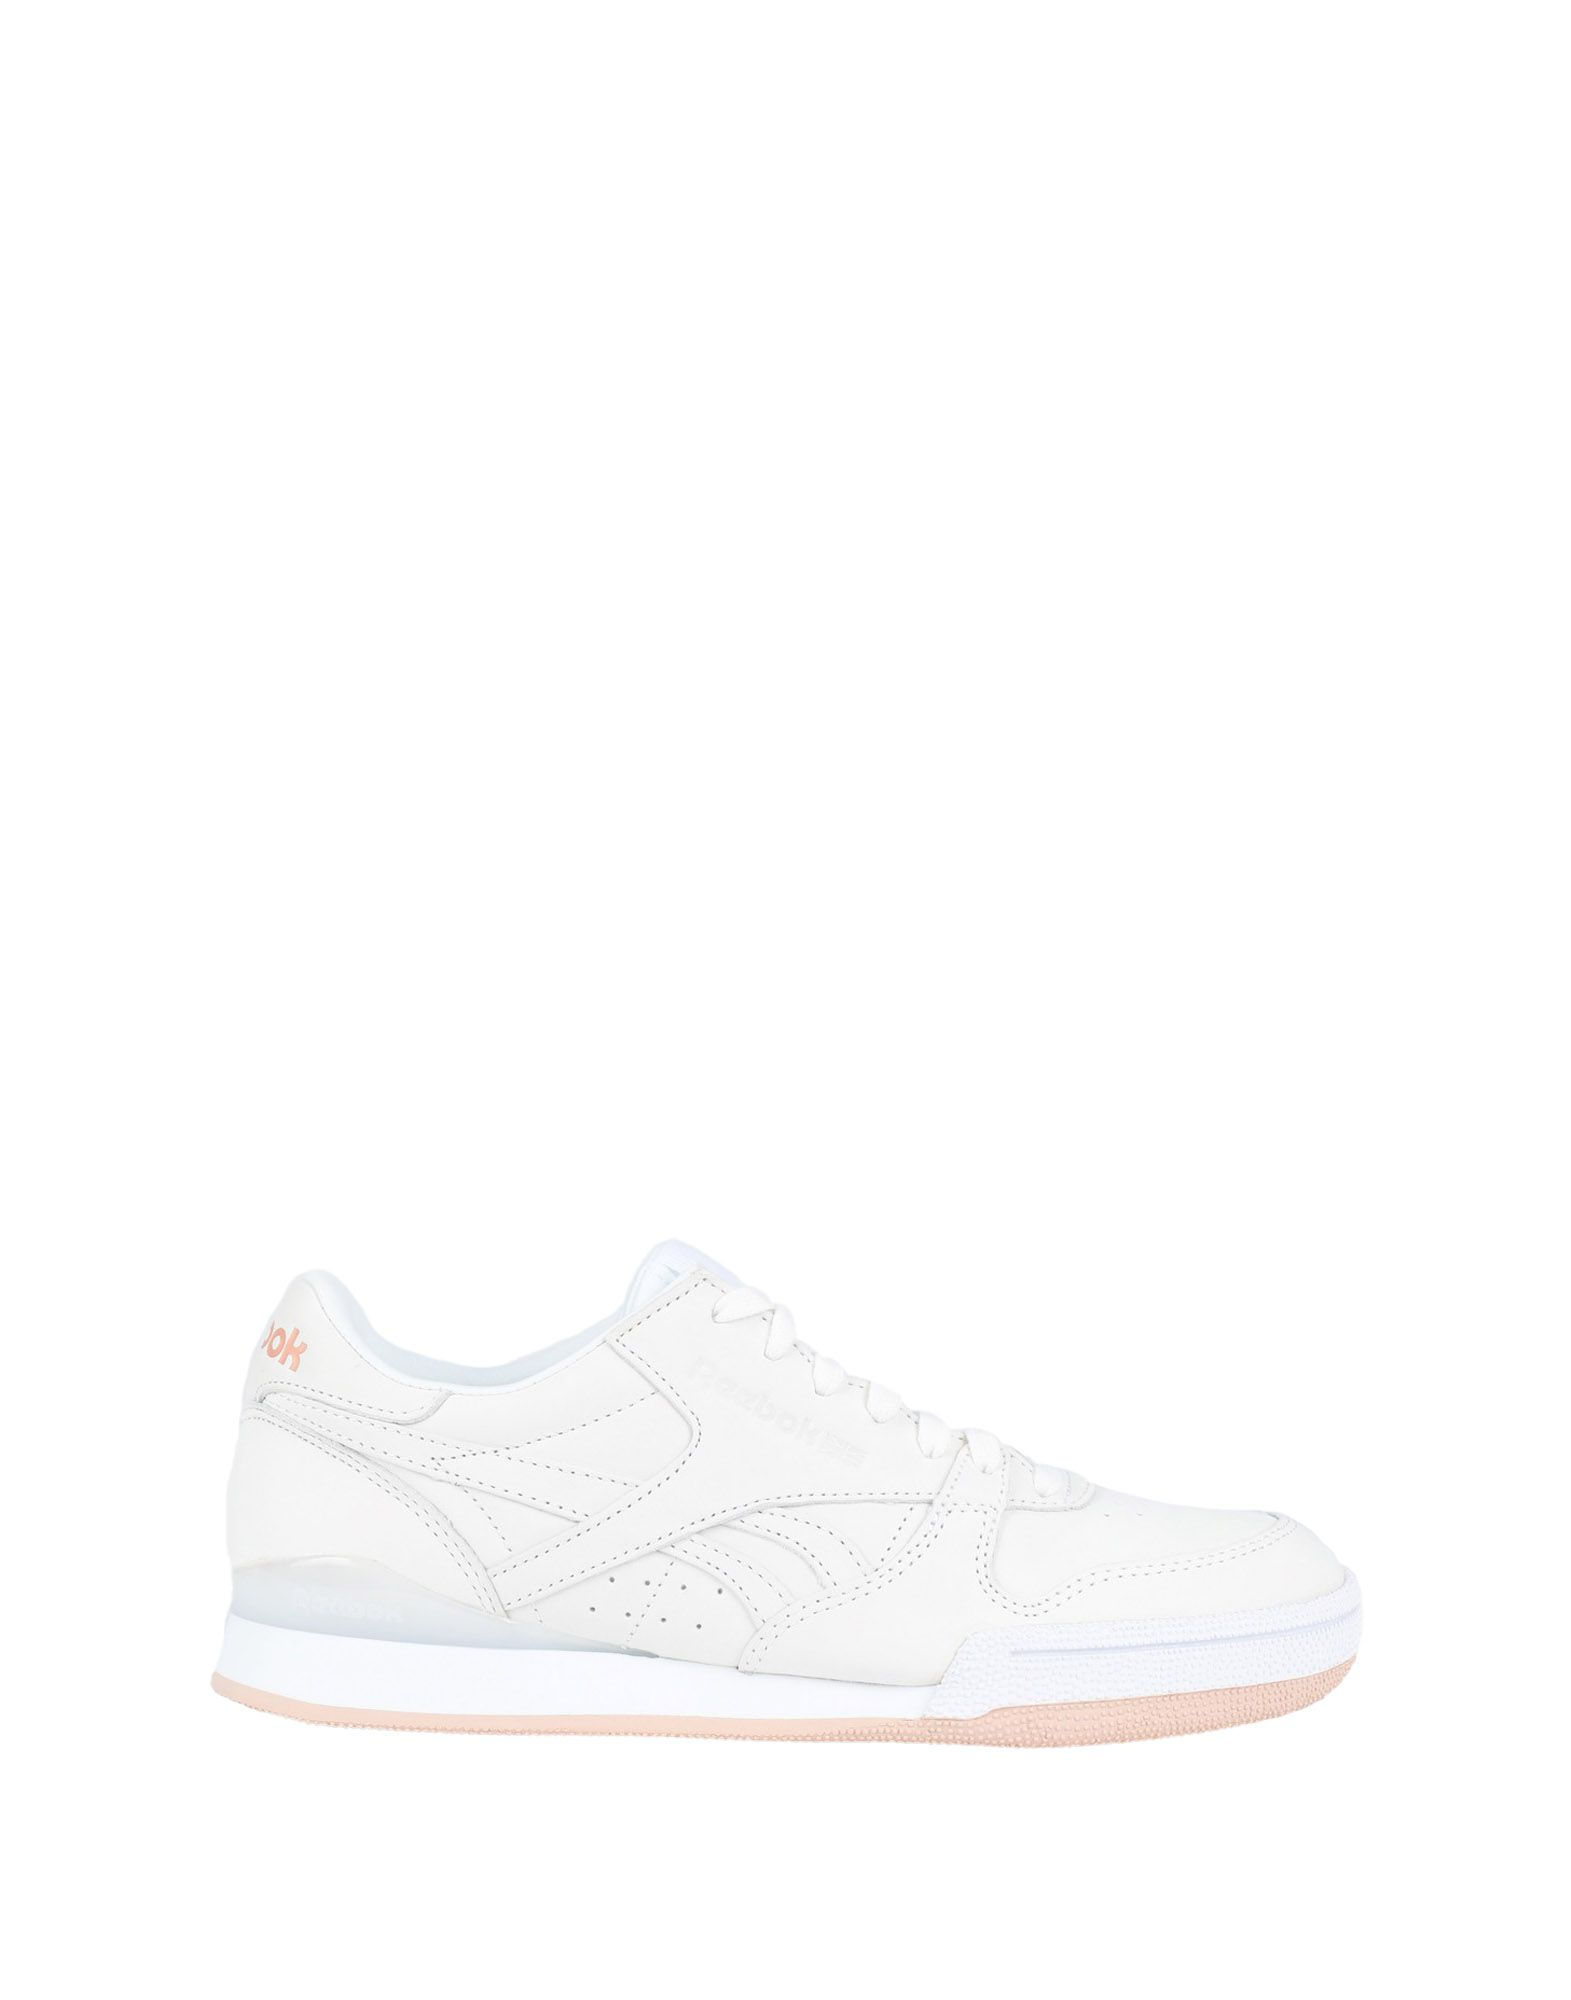 Baskets Reebok Phase 1 Pro - Femme - Baskets Reebok Ivoire Confortable et belle